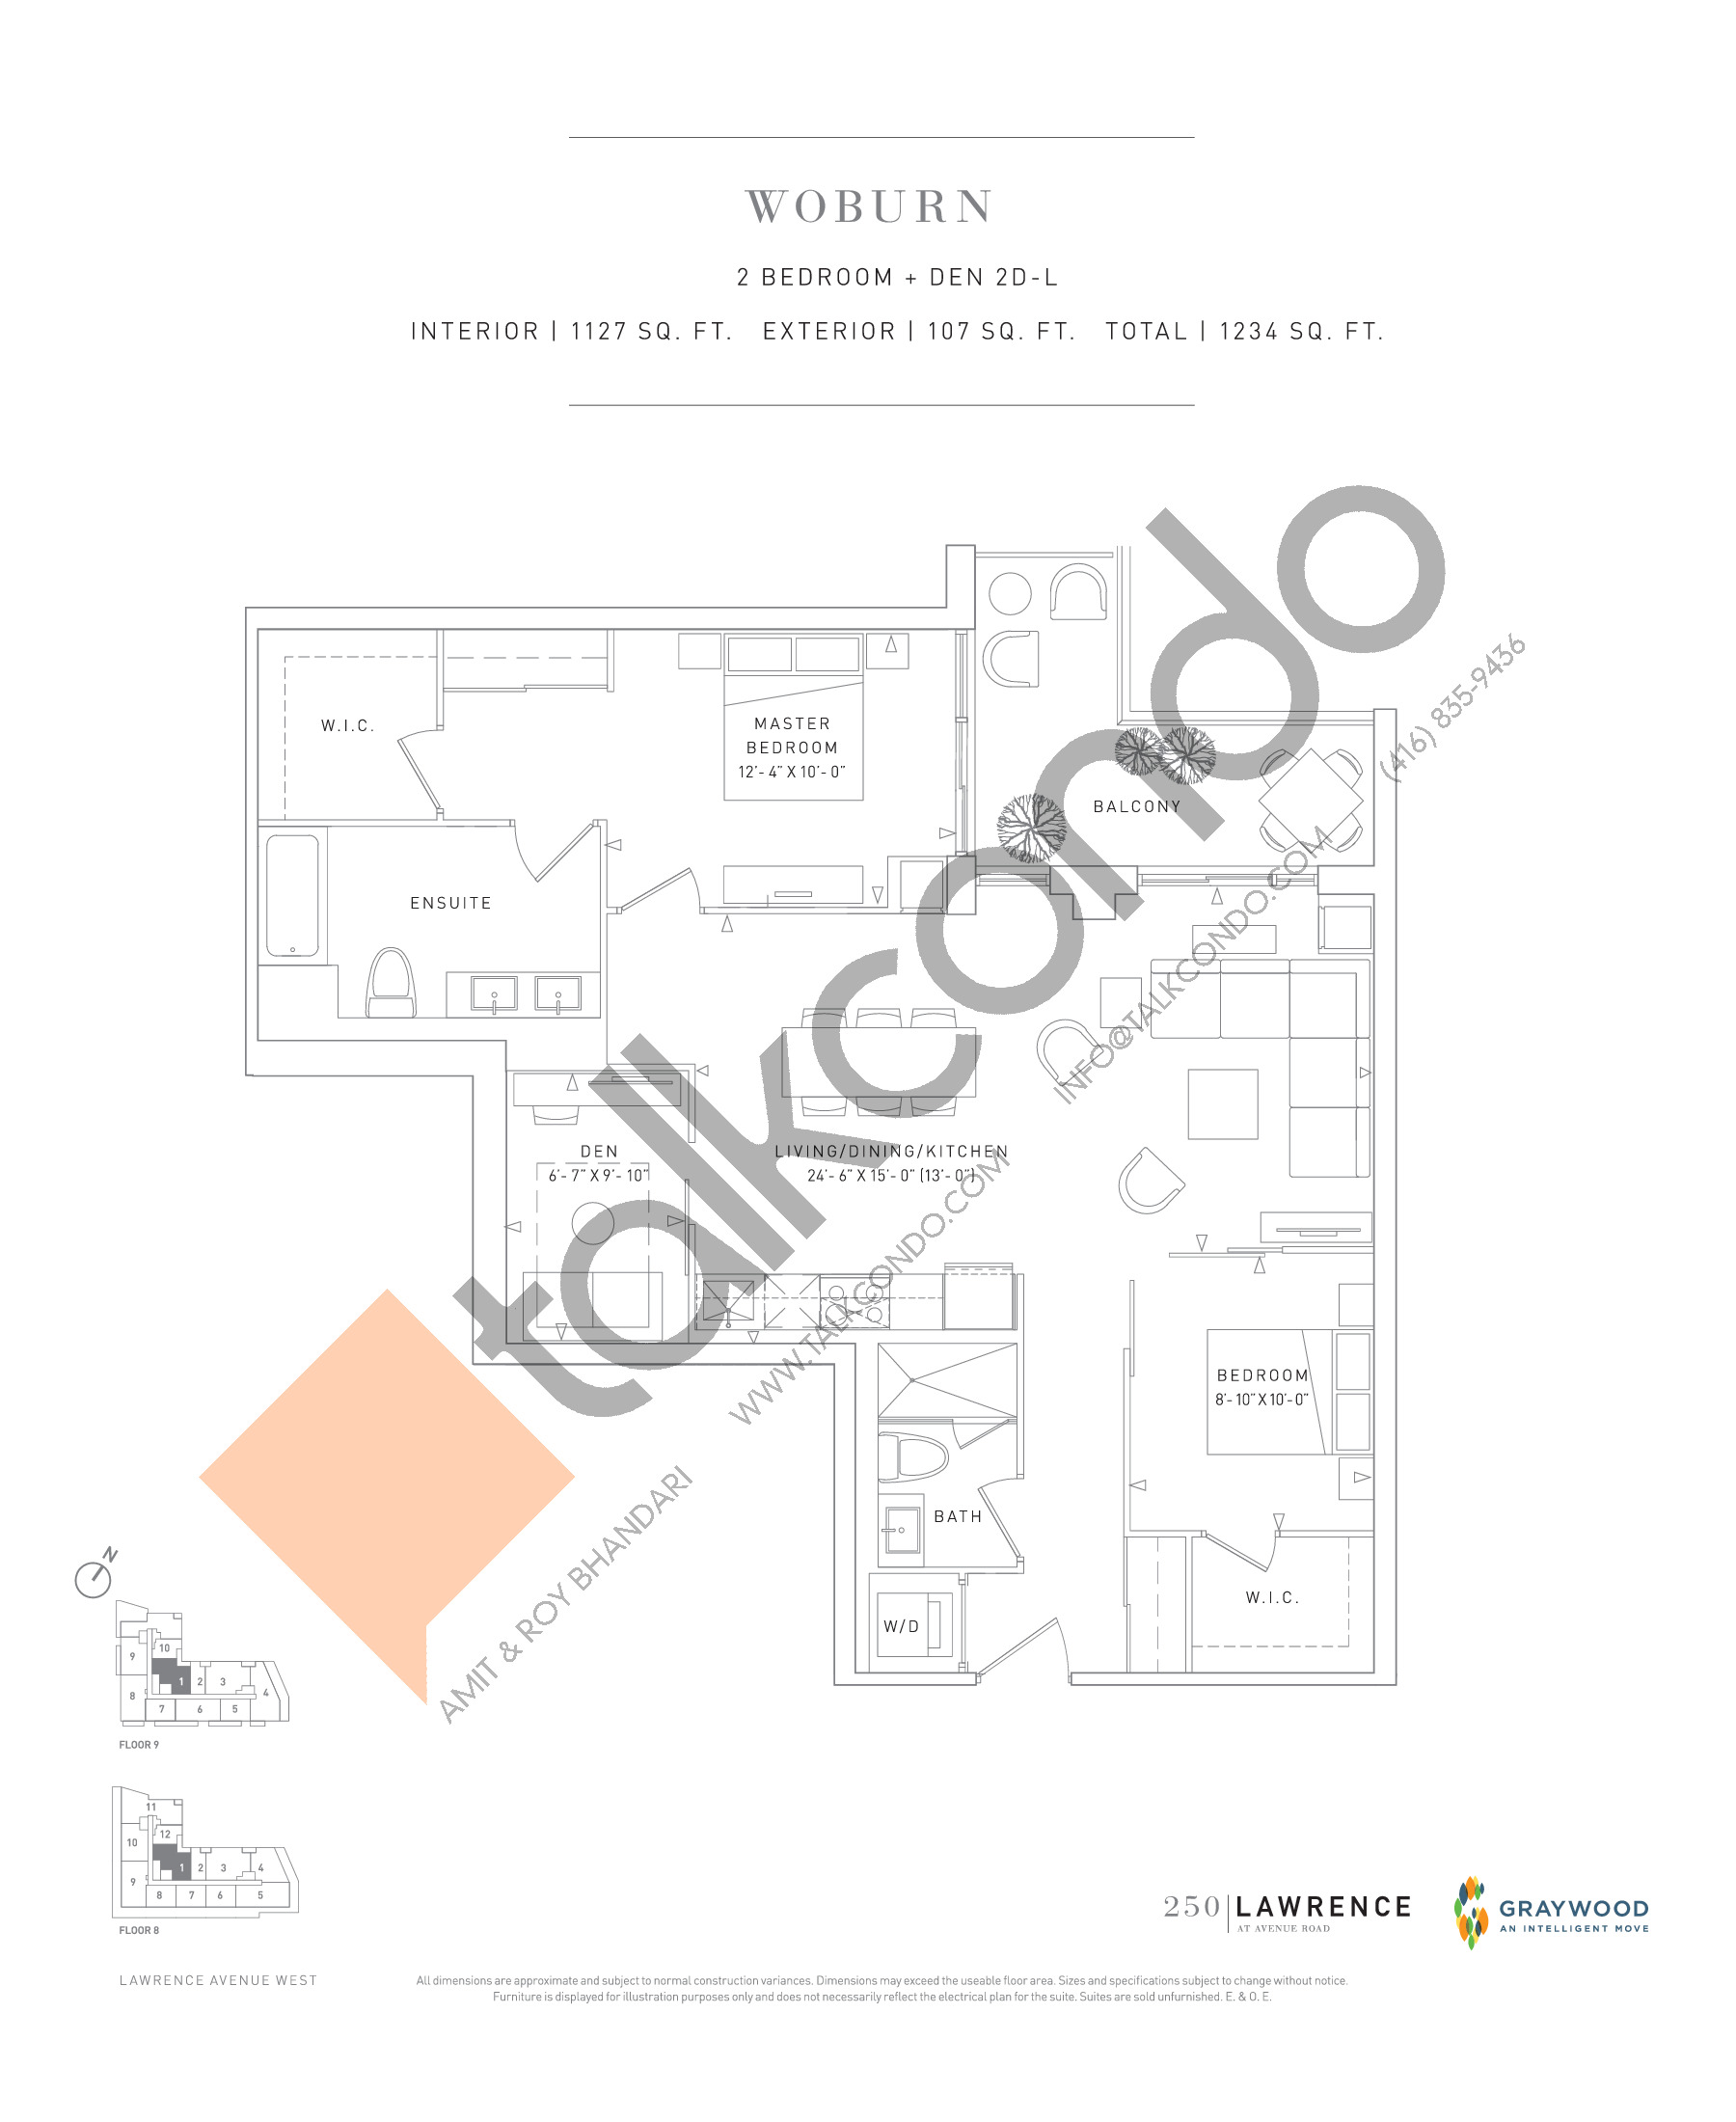 Woburn Floor Plan at 250 Lawrence Avenue West Condos - 1127 sq.ft